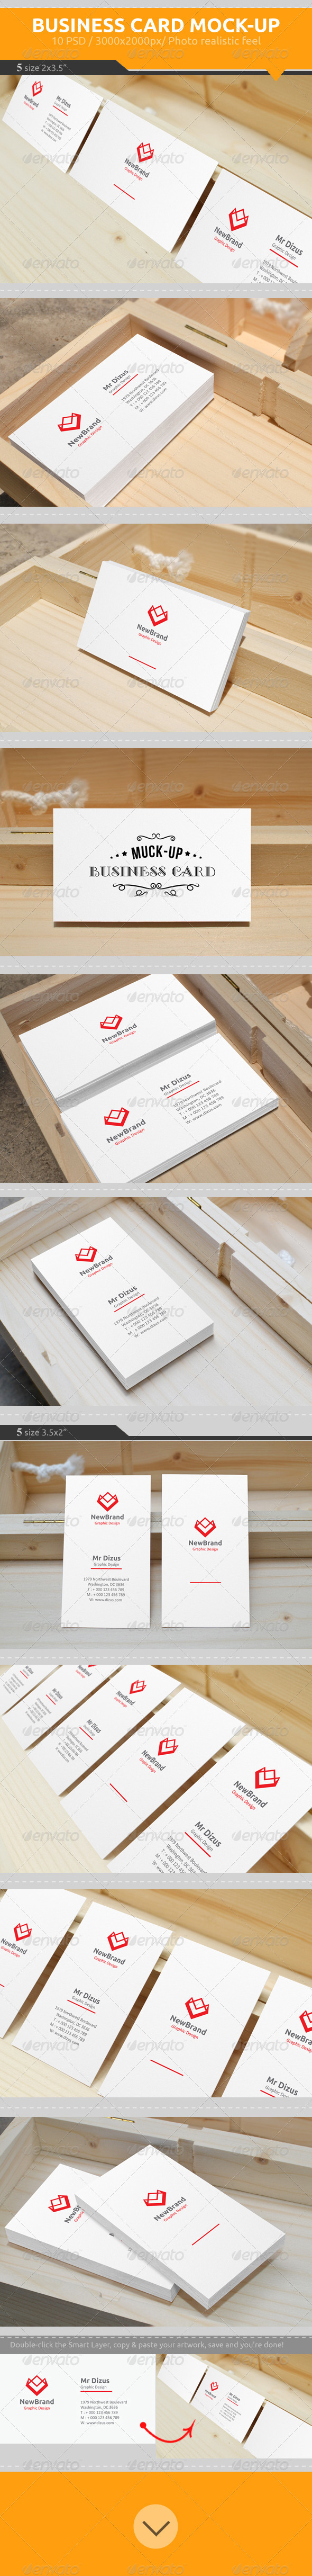 GraphicRiver Business Card Mock-Up 7315918